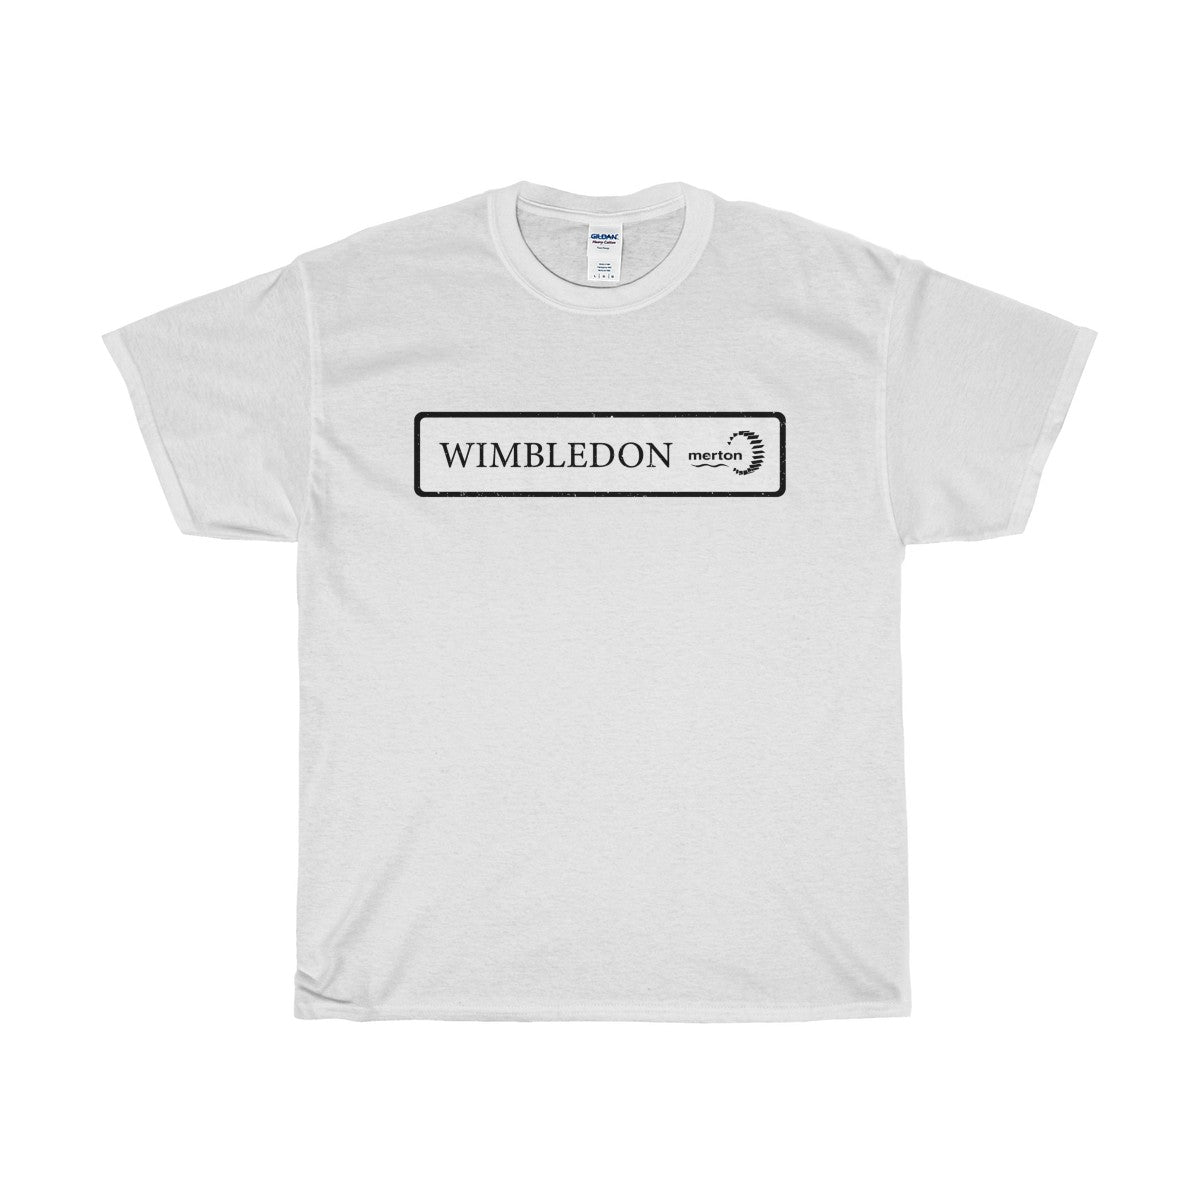 Wimbledon Road Sign T-Shirt